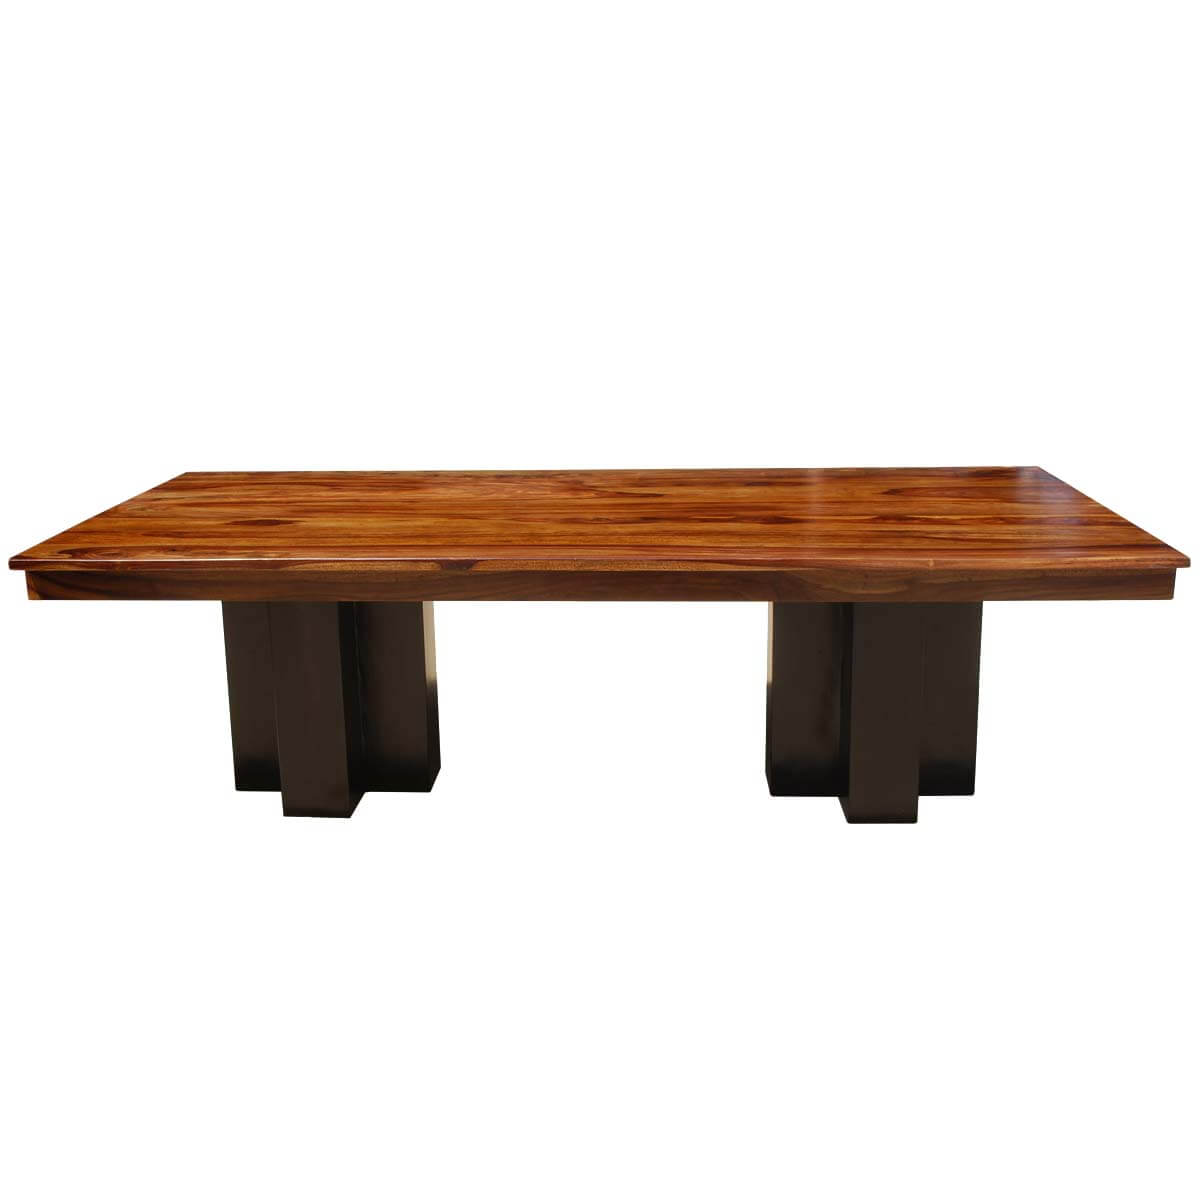 Sutton Wood Double Pedestal Large Conference Table w  : 44302 from sierralivingconcepts.com size 1200 x 1200 jpeg 65kB